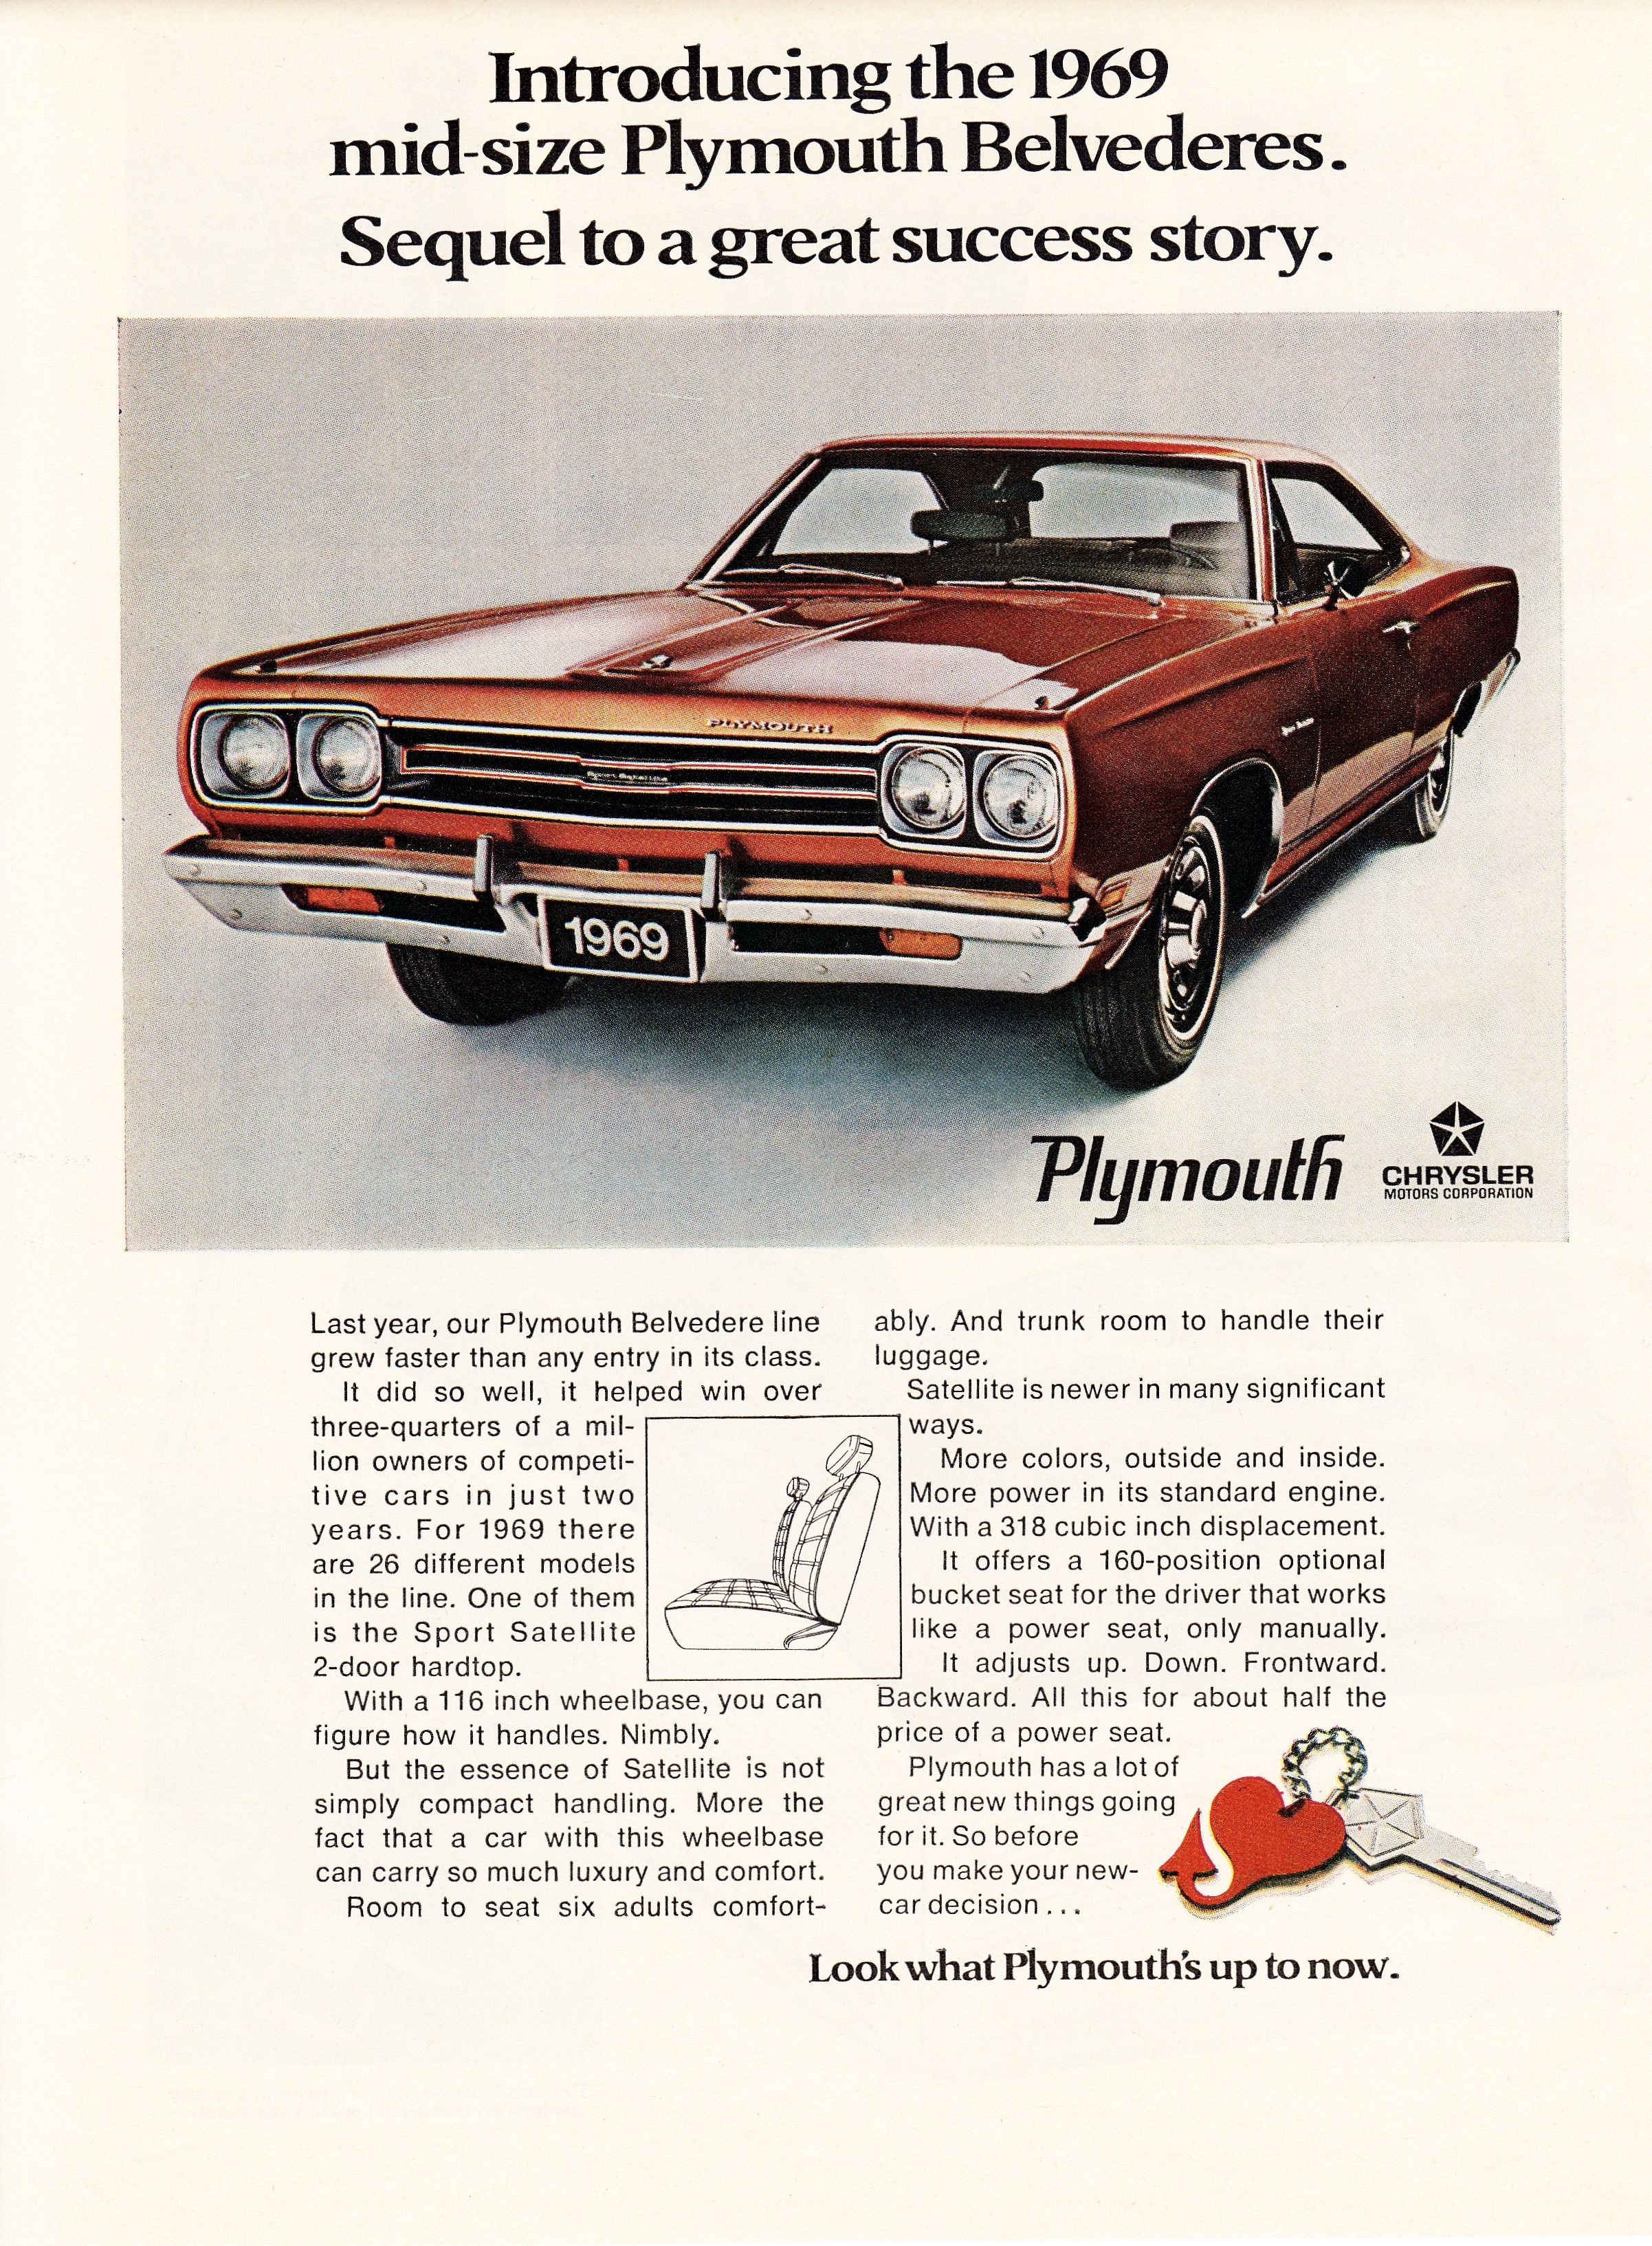 1969 Plymouth Belvedere.